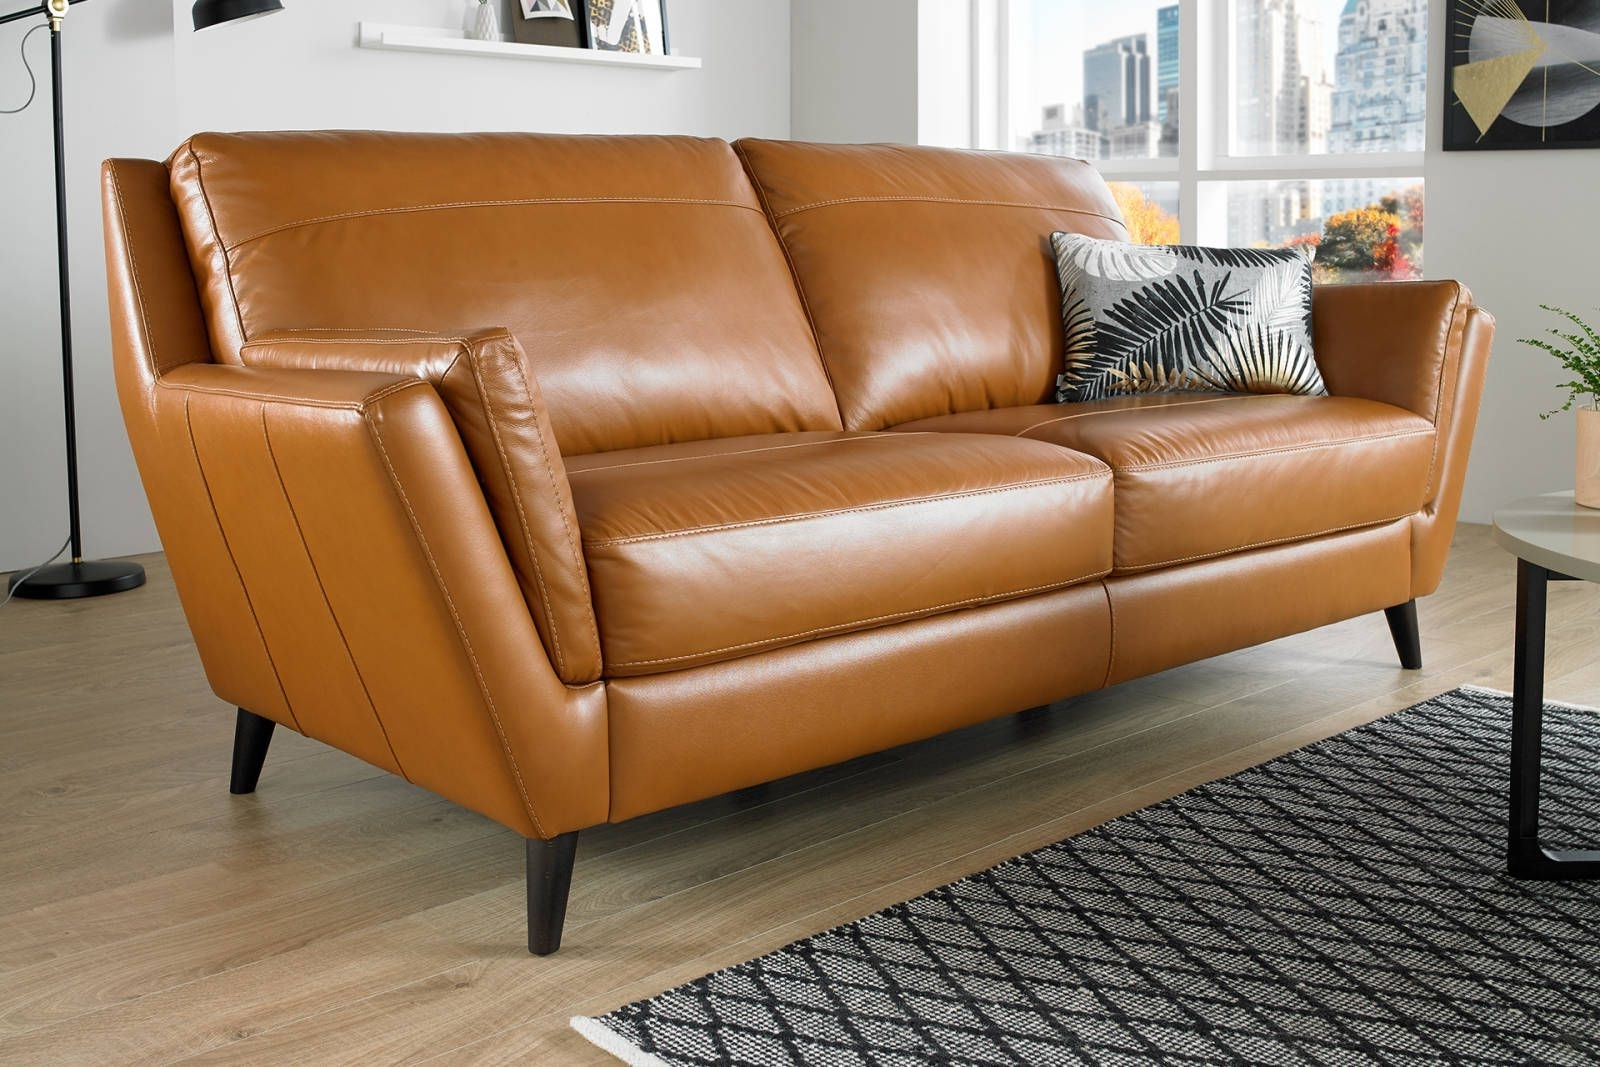 Well Known Homemakers Sectional Sofas Pertaining To Image Result For Leather Orange Brown Sofa (View 14 of 20)